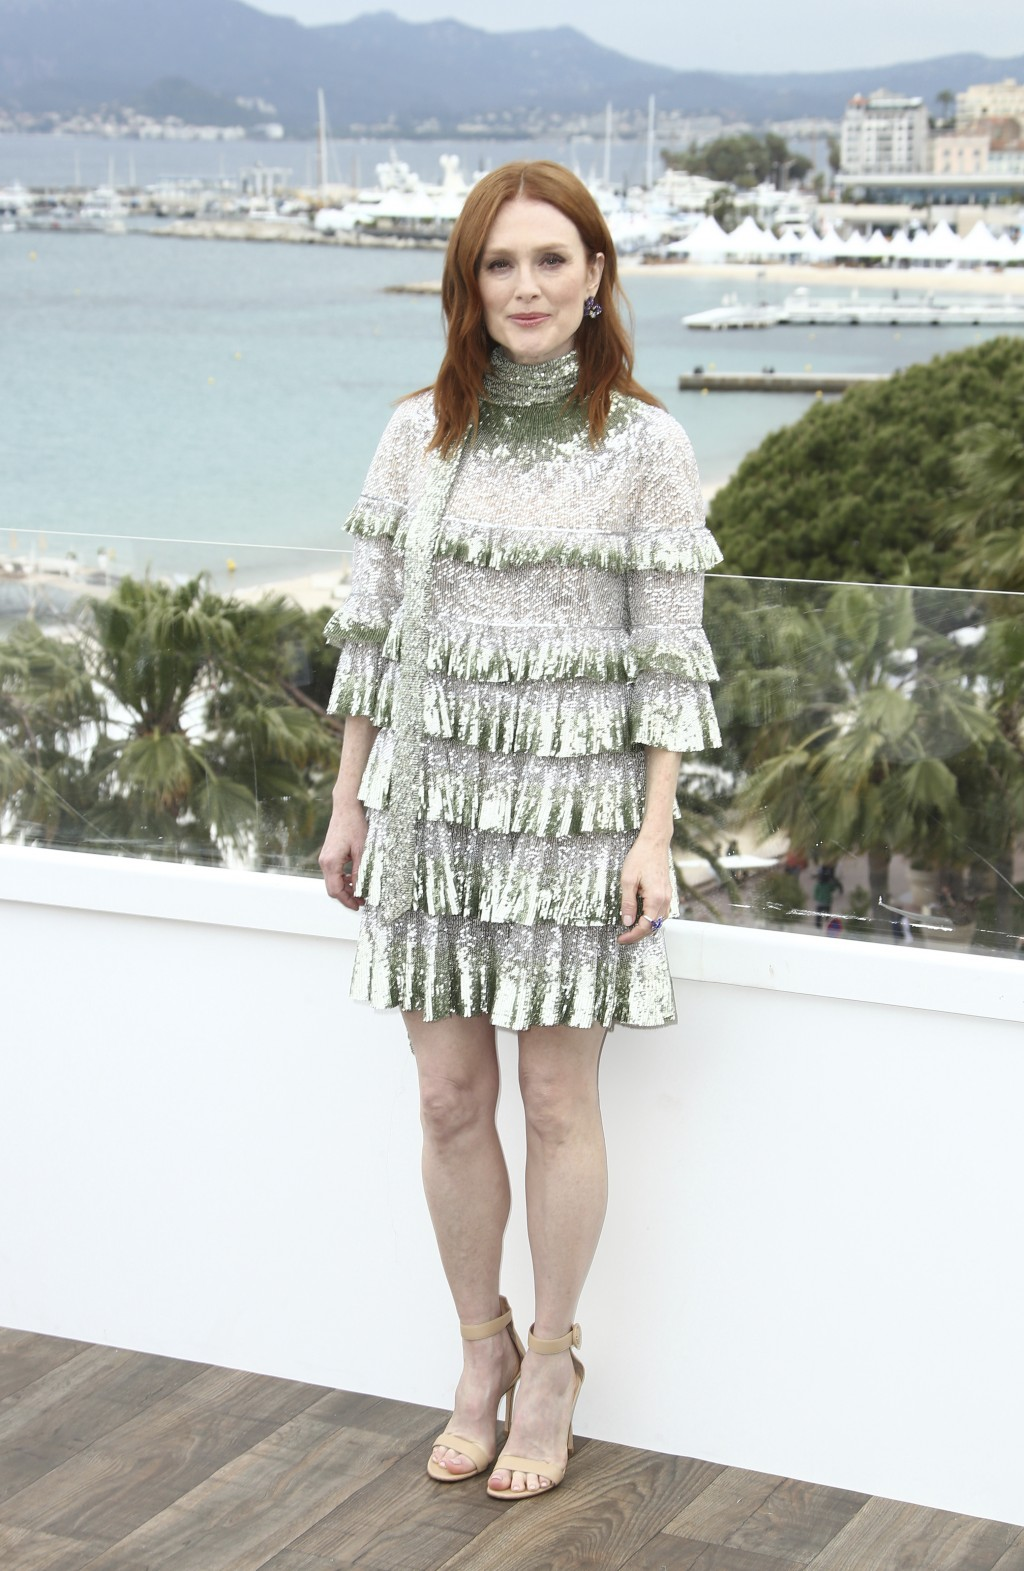 Actress Julianne Moore poses for photographers at the photo call for the film 'The Staggering Girl' at the 72nd international film festival, Cannes, s